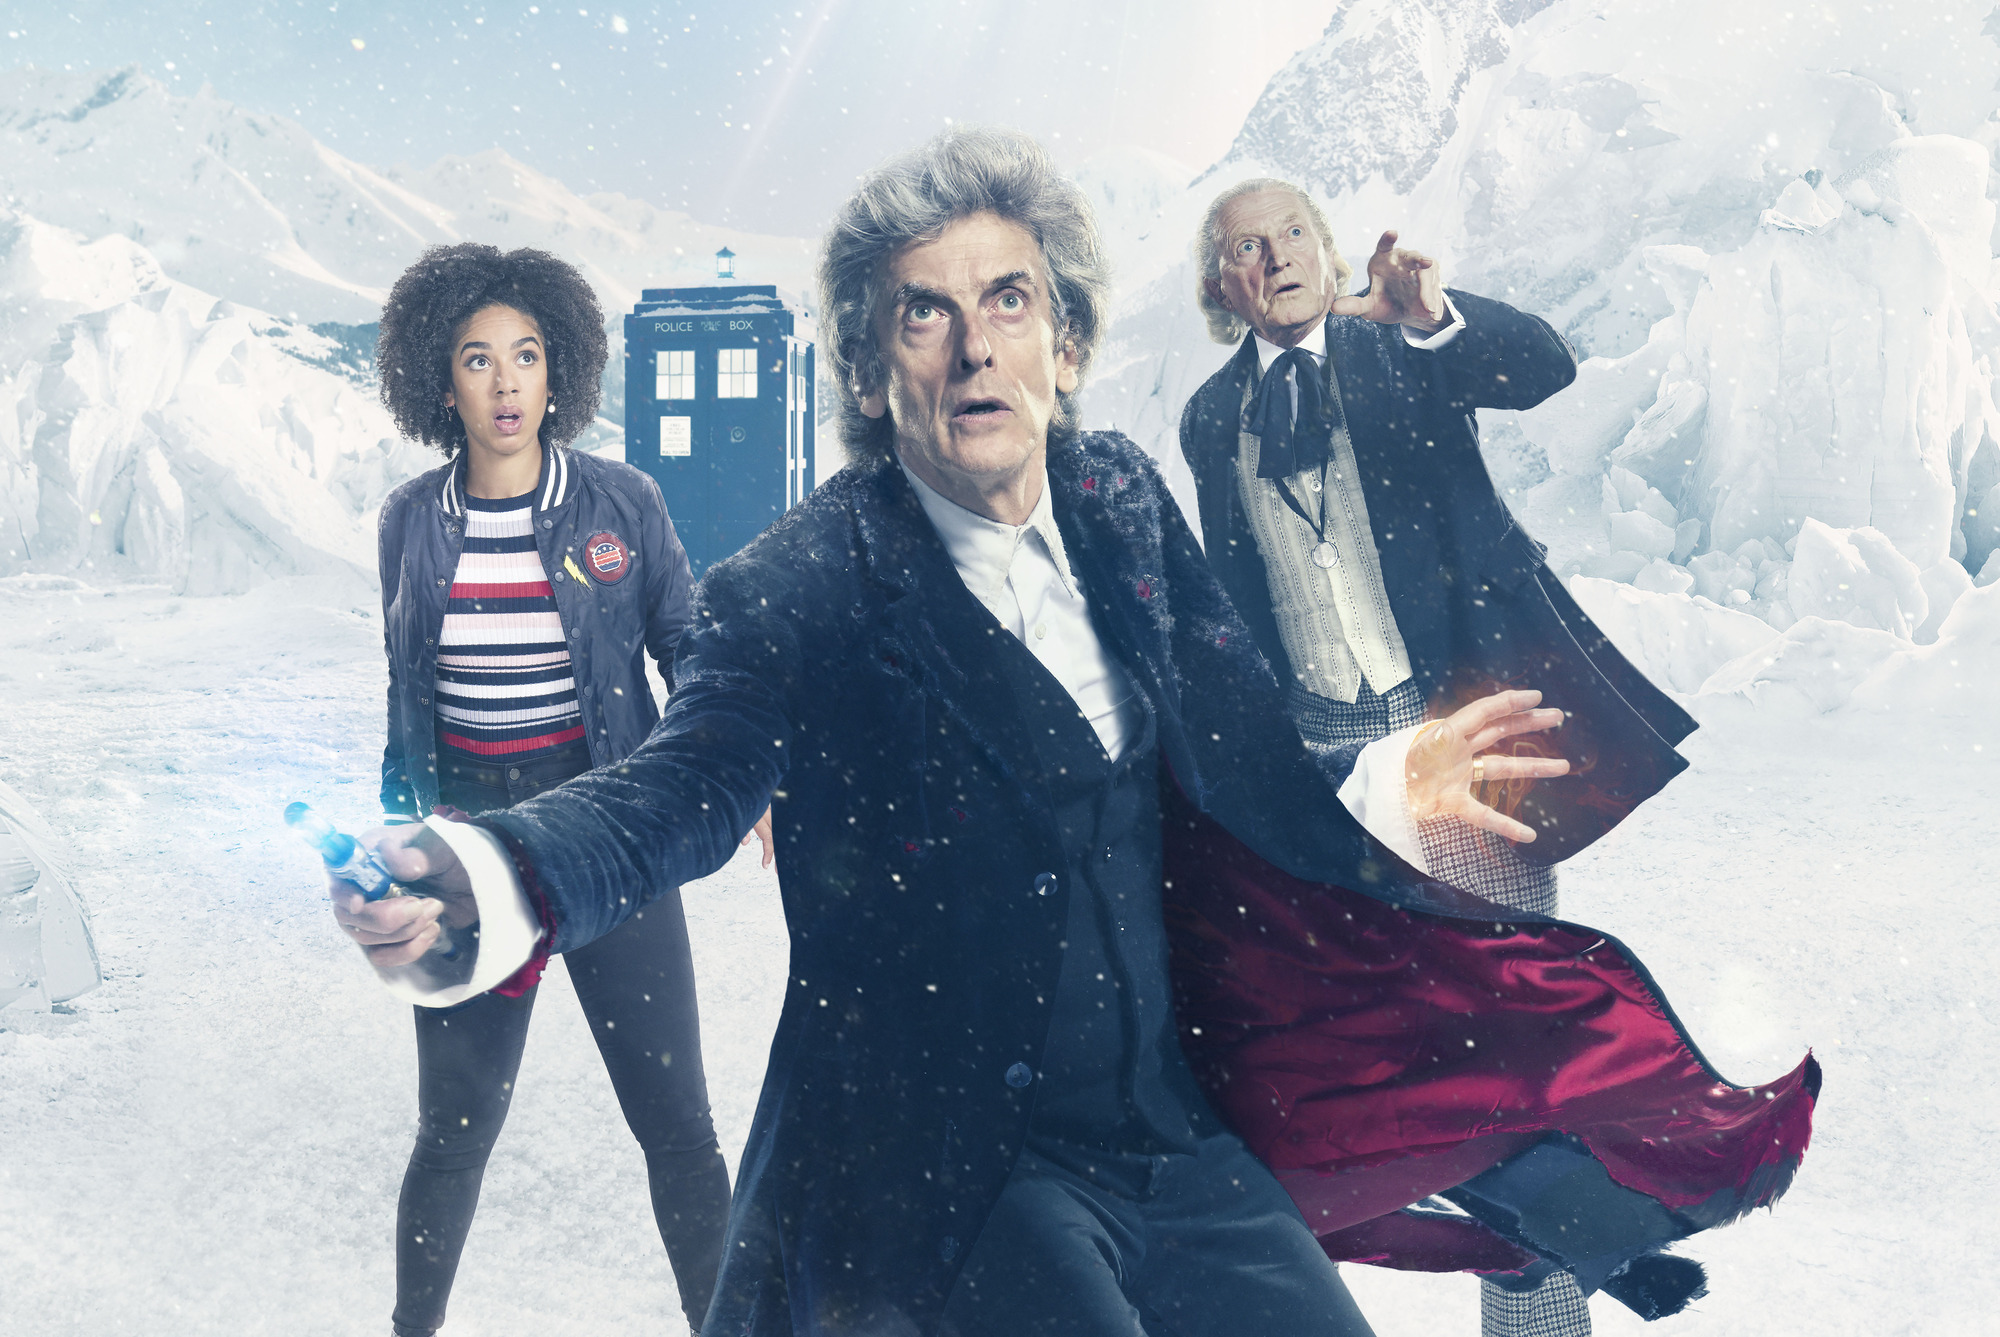 Pearl Mackie, Peter Capaldi and David Bradley in the Doctor Who 2017 Christmas special (BBC Pictures)